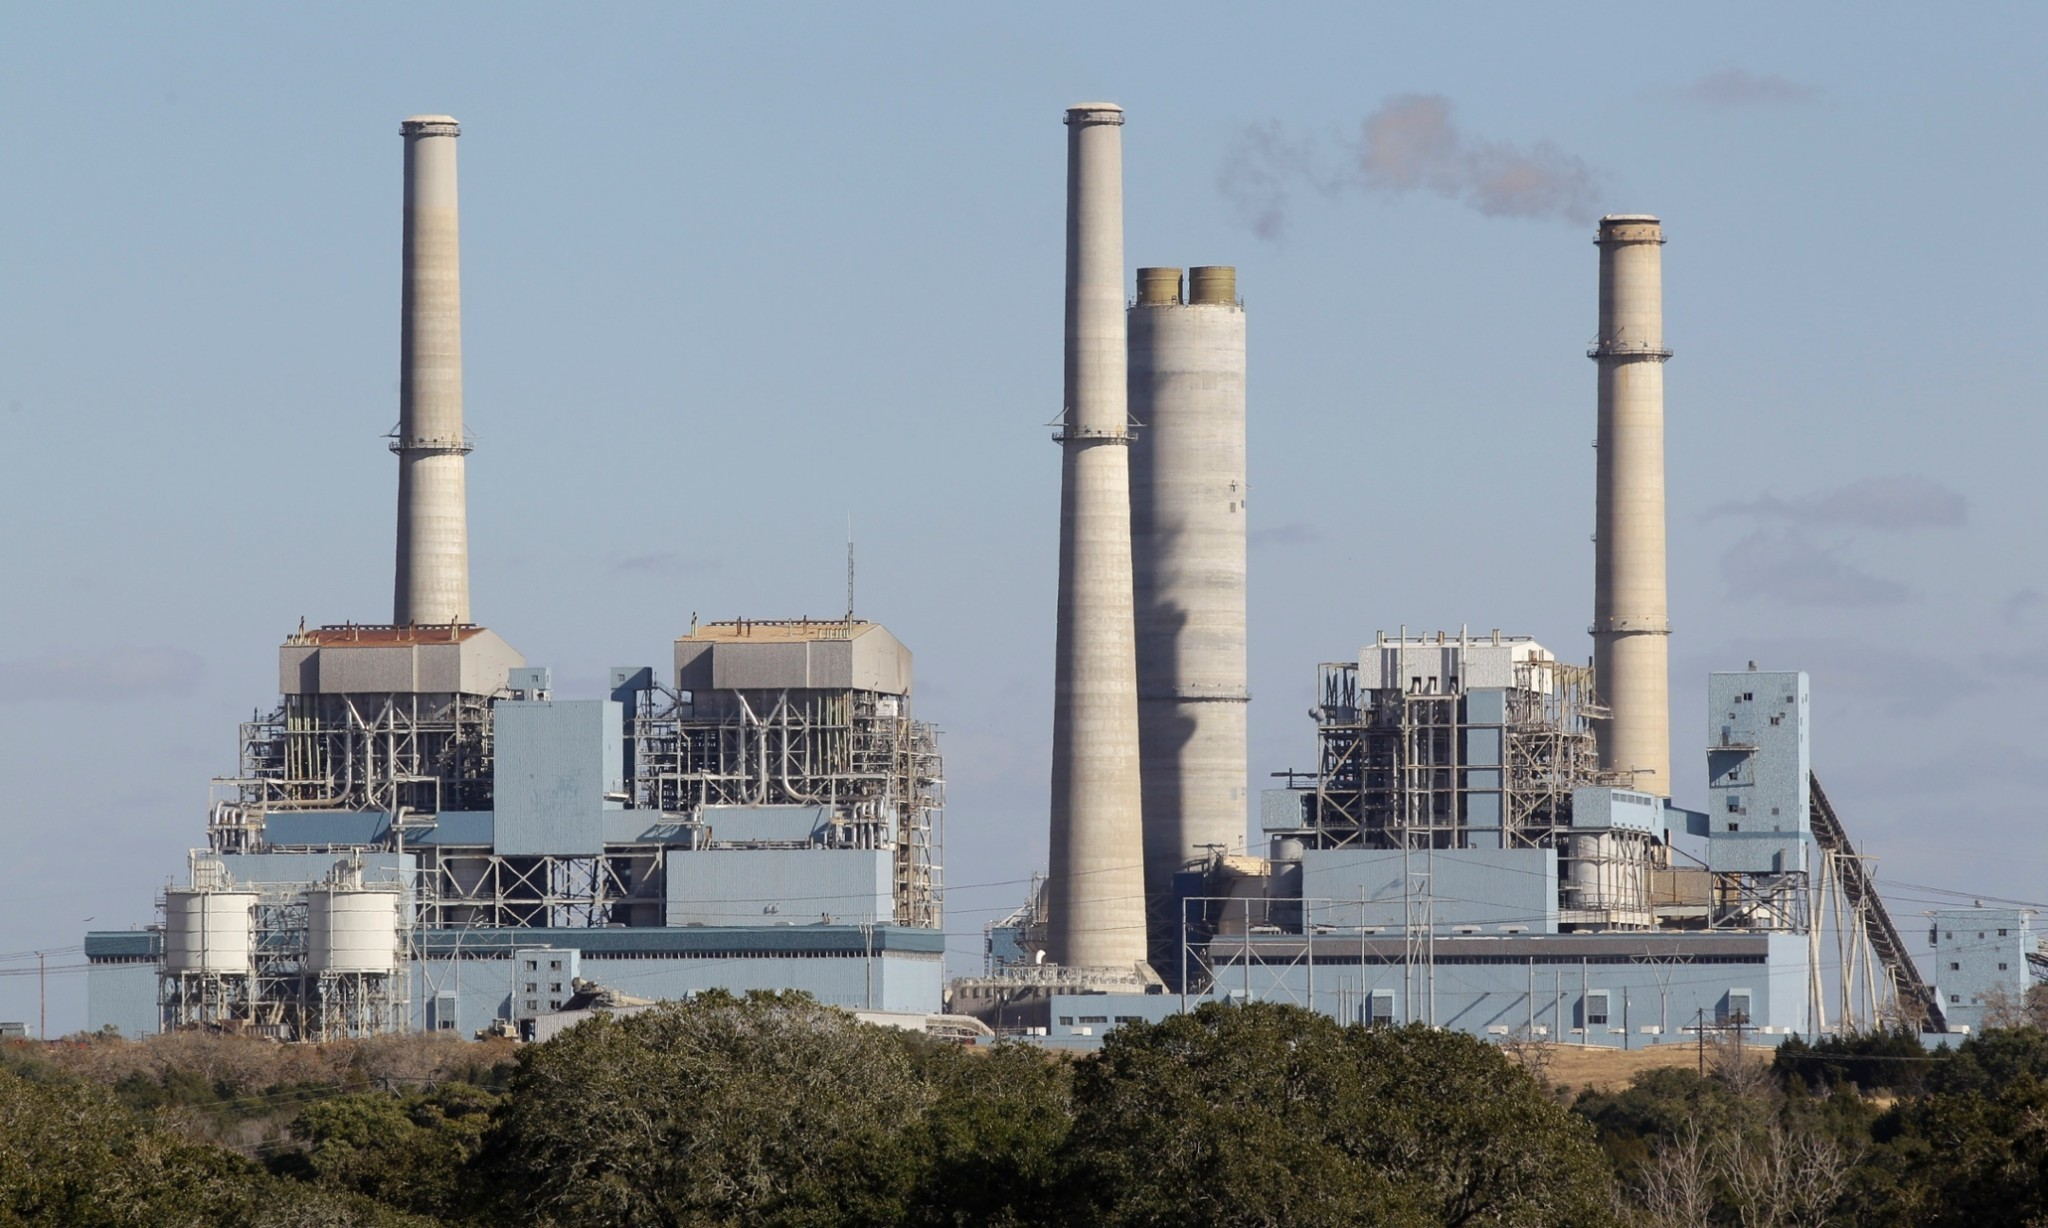 Texas proposes rewriting school text books to deny manmade climate change